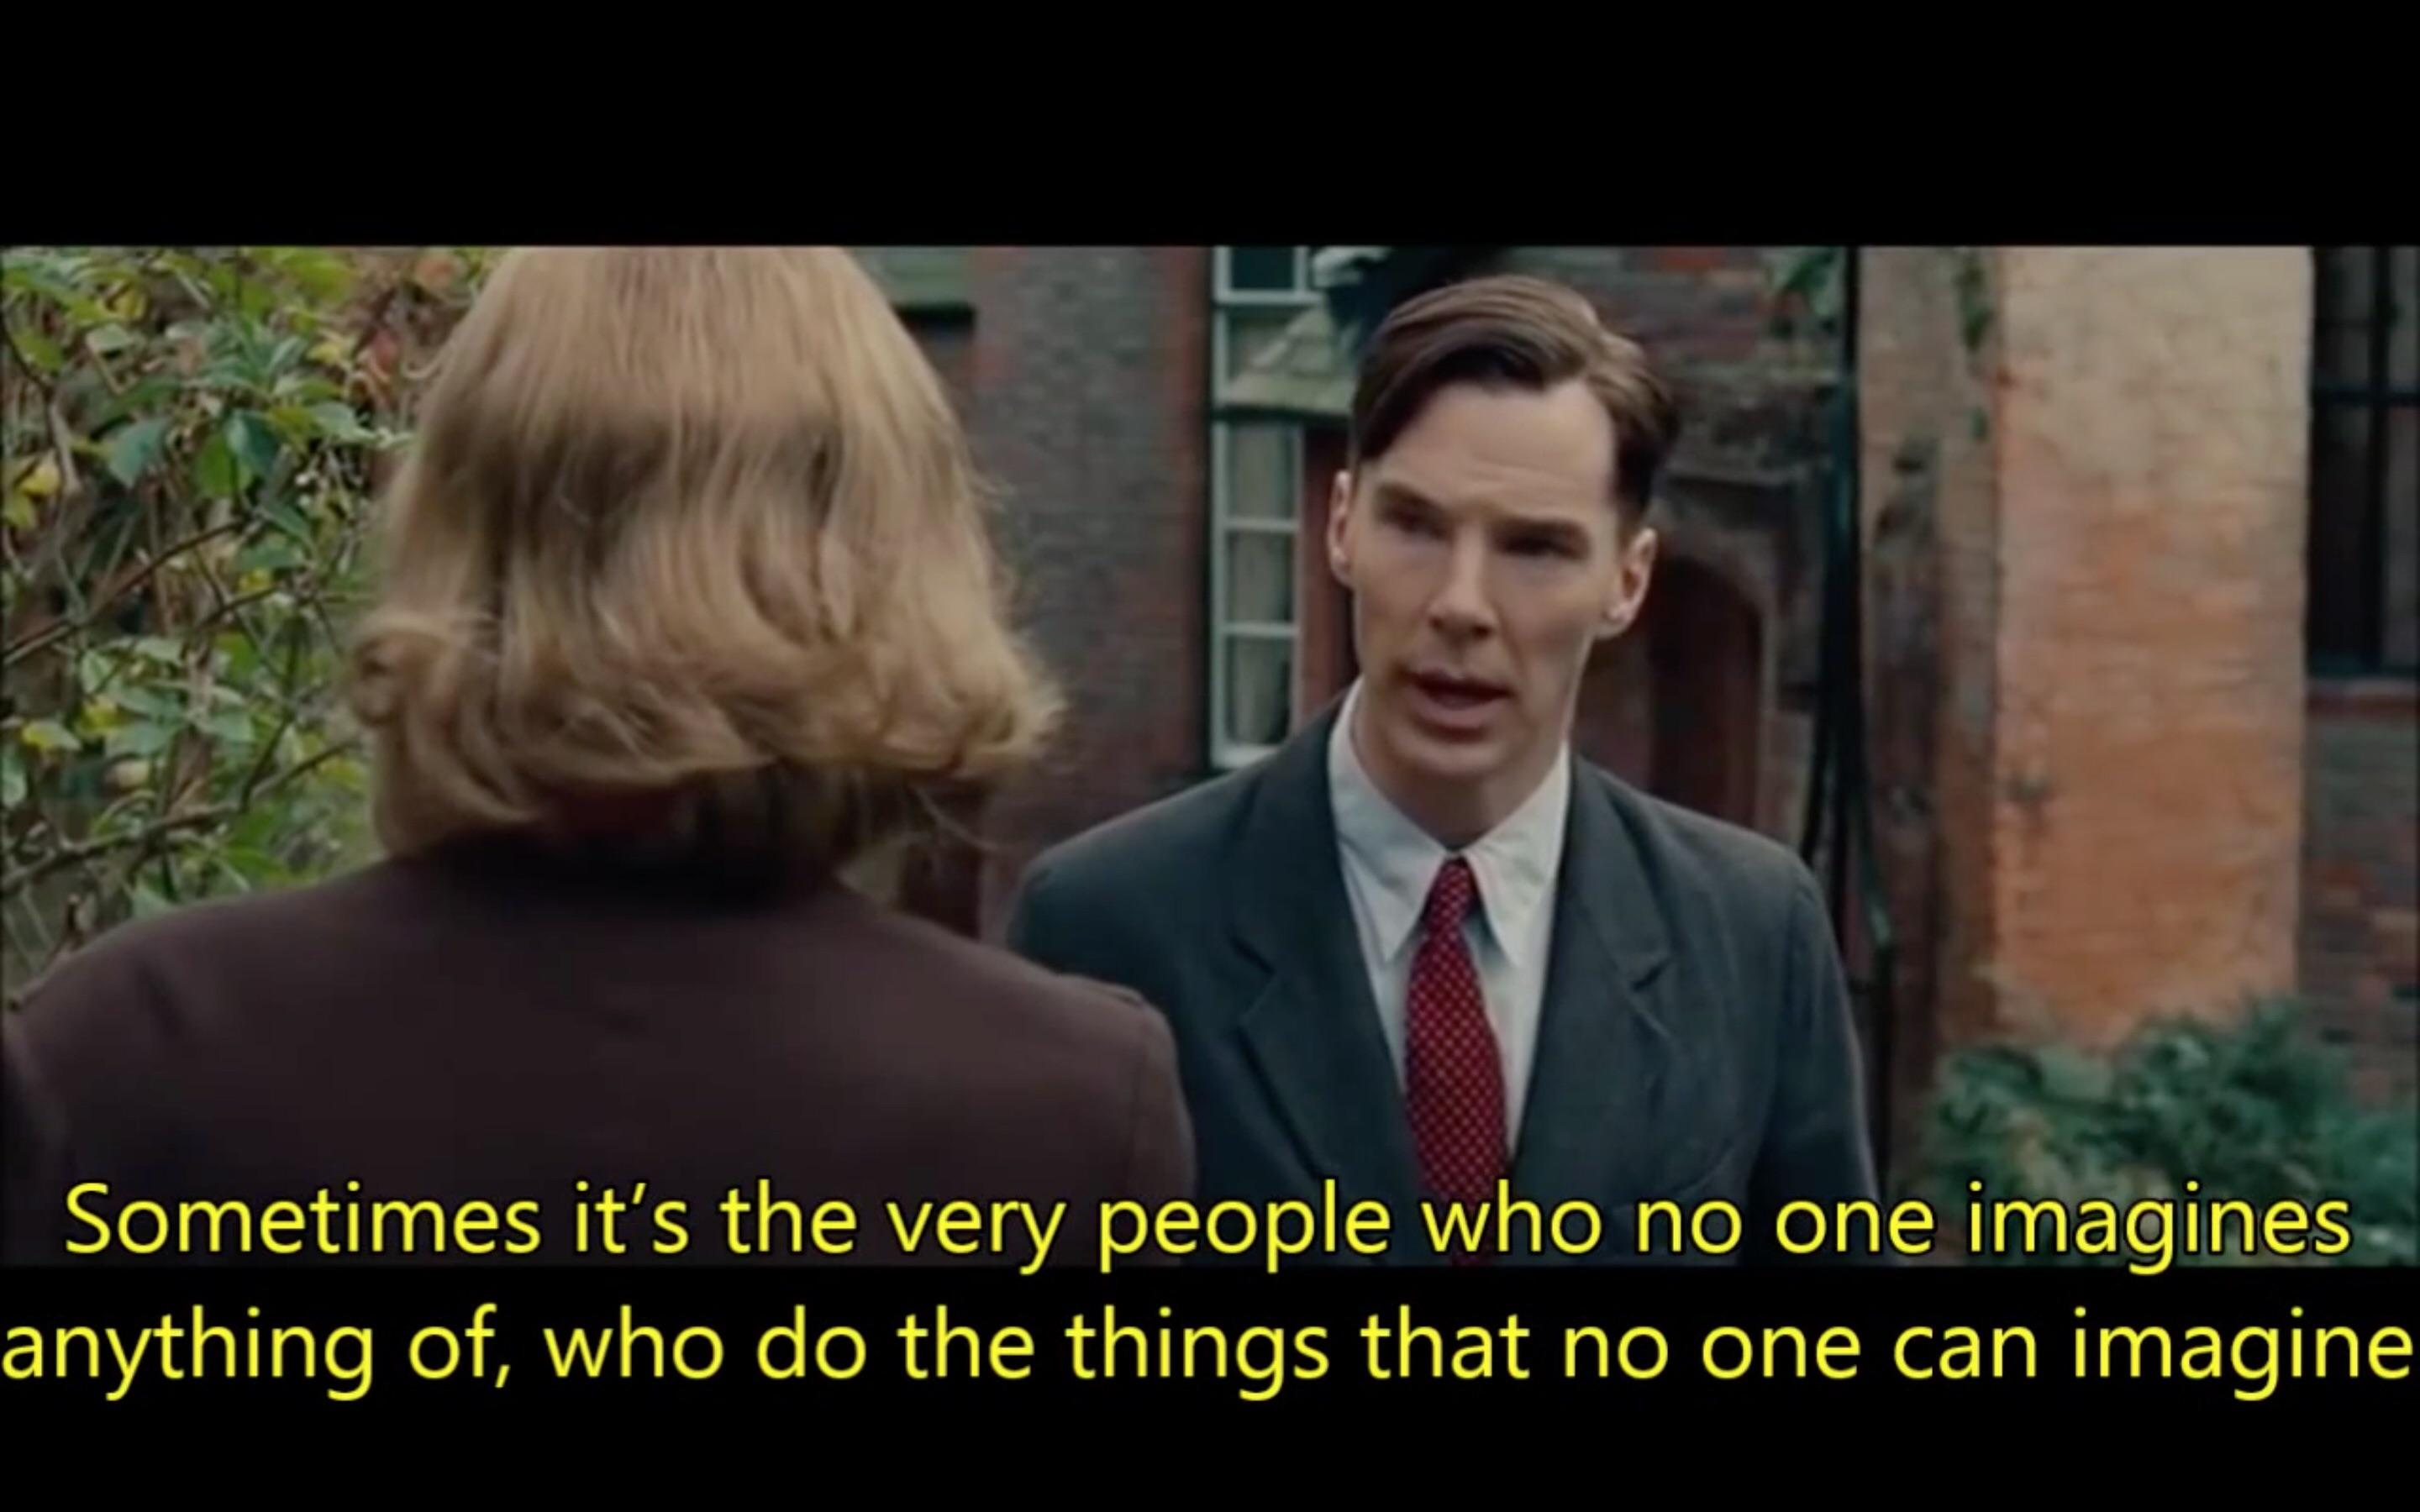 [Image] My favorite quote from The Imitation Game